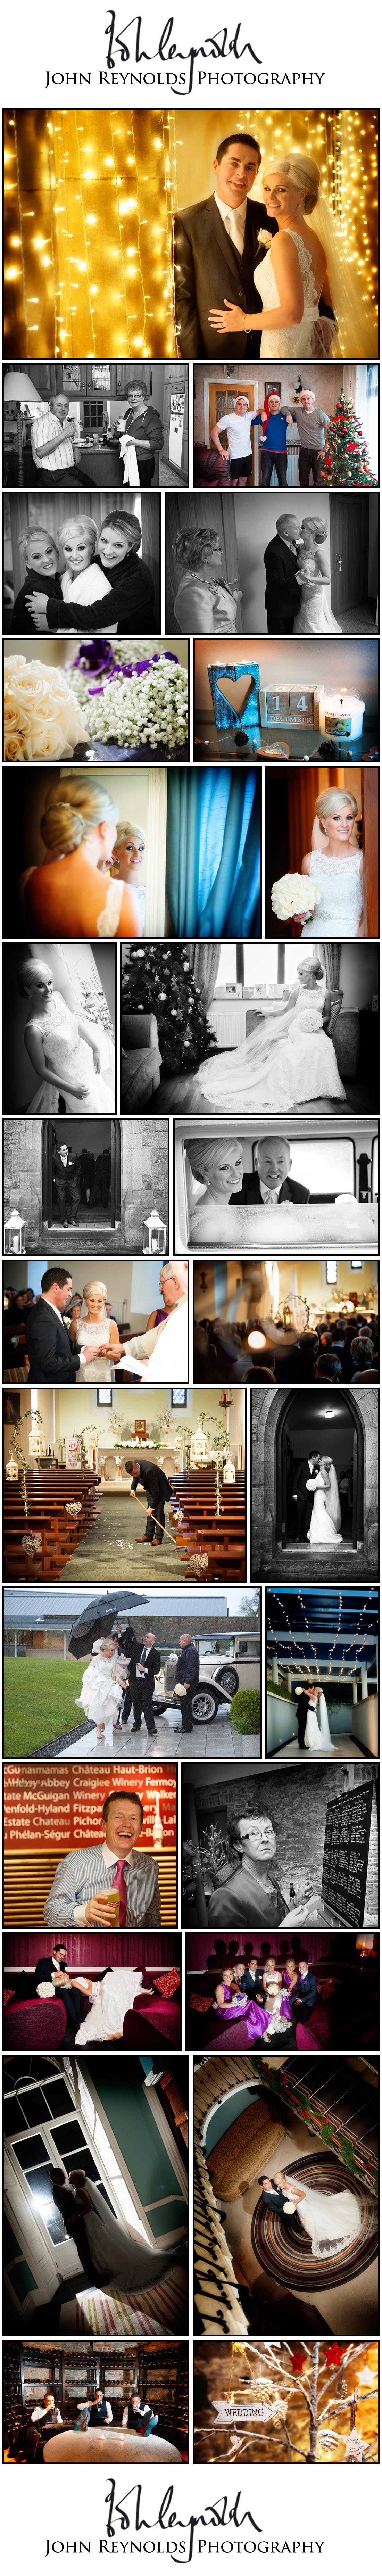 Blog Collage-Joanne & Fergus